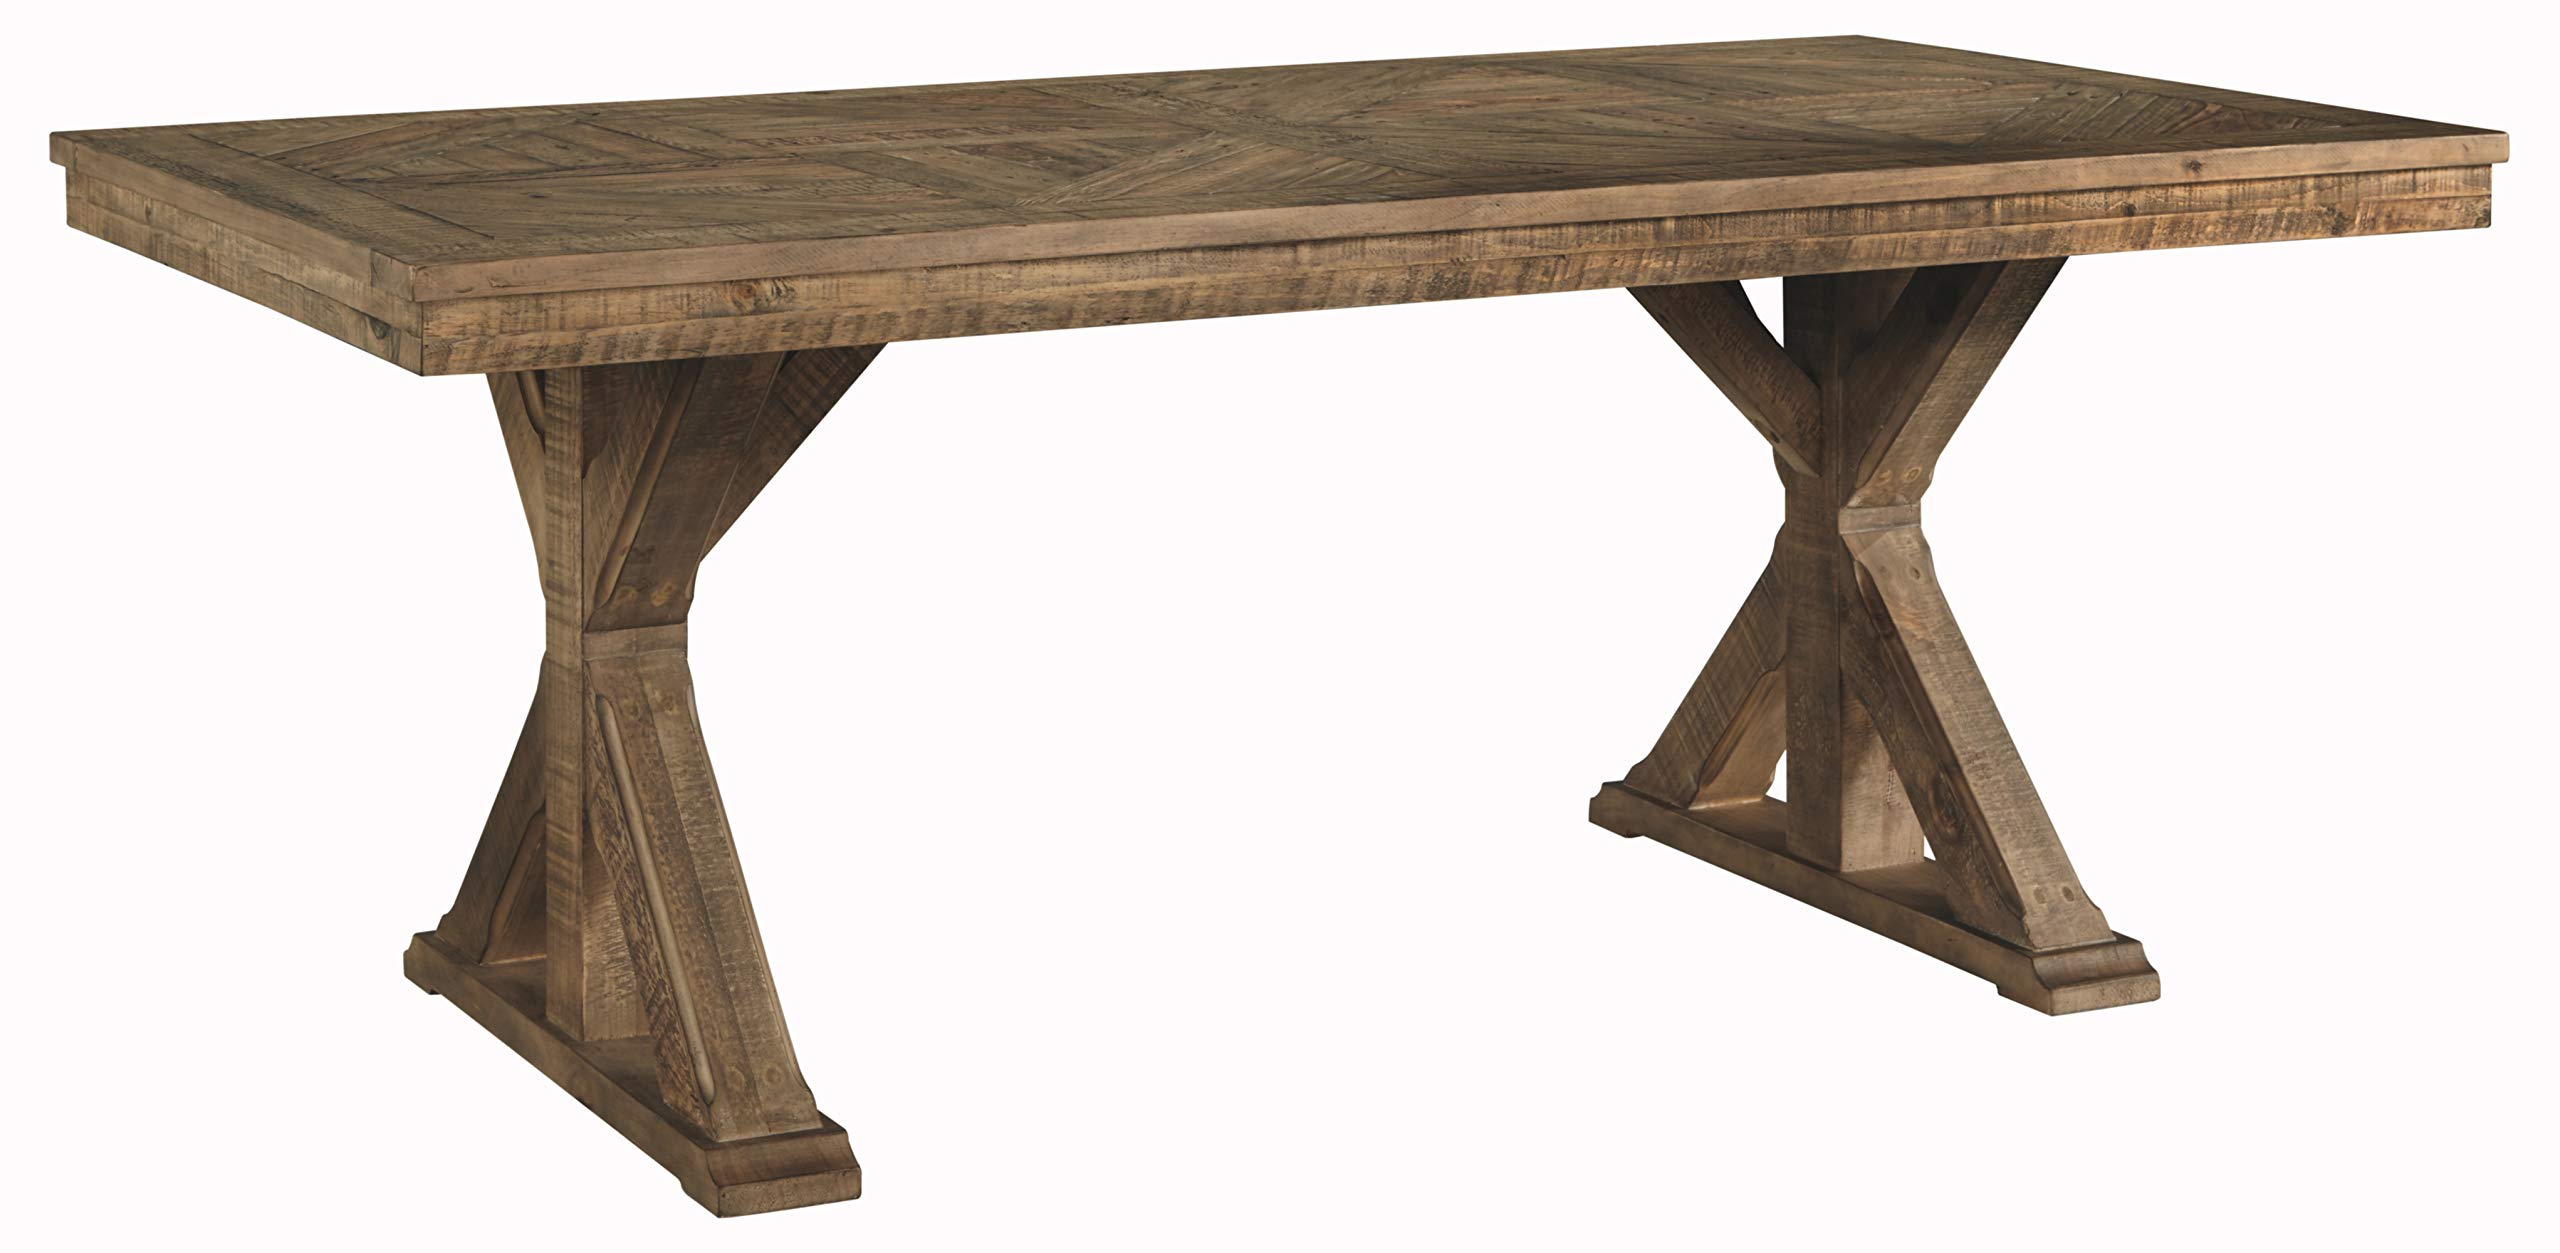 Signature Design By Ashley - Grindleburg Rectangular Dining Room Table - Casual Style - White/Light Brown by Signature Design by Ashley